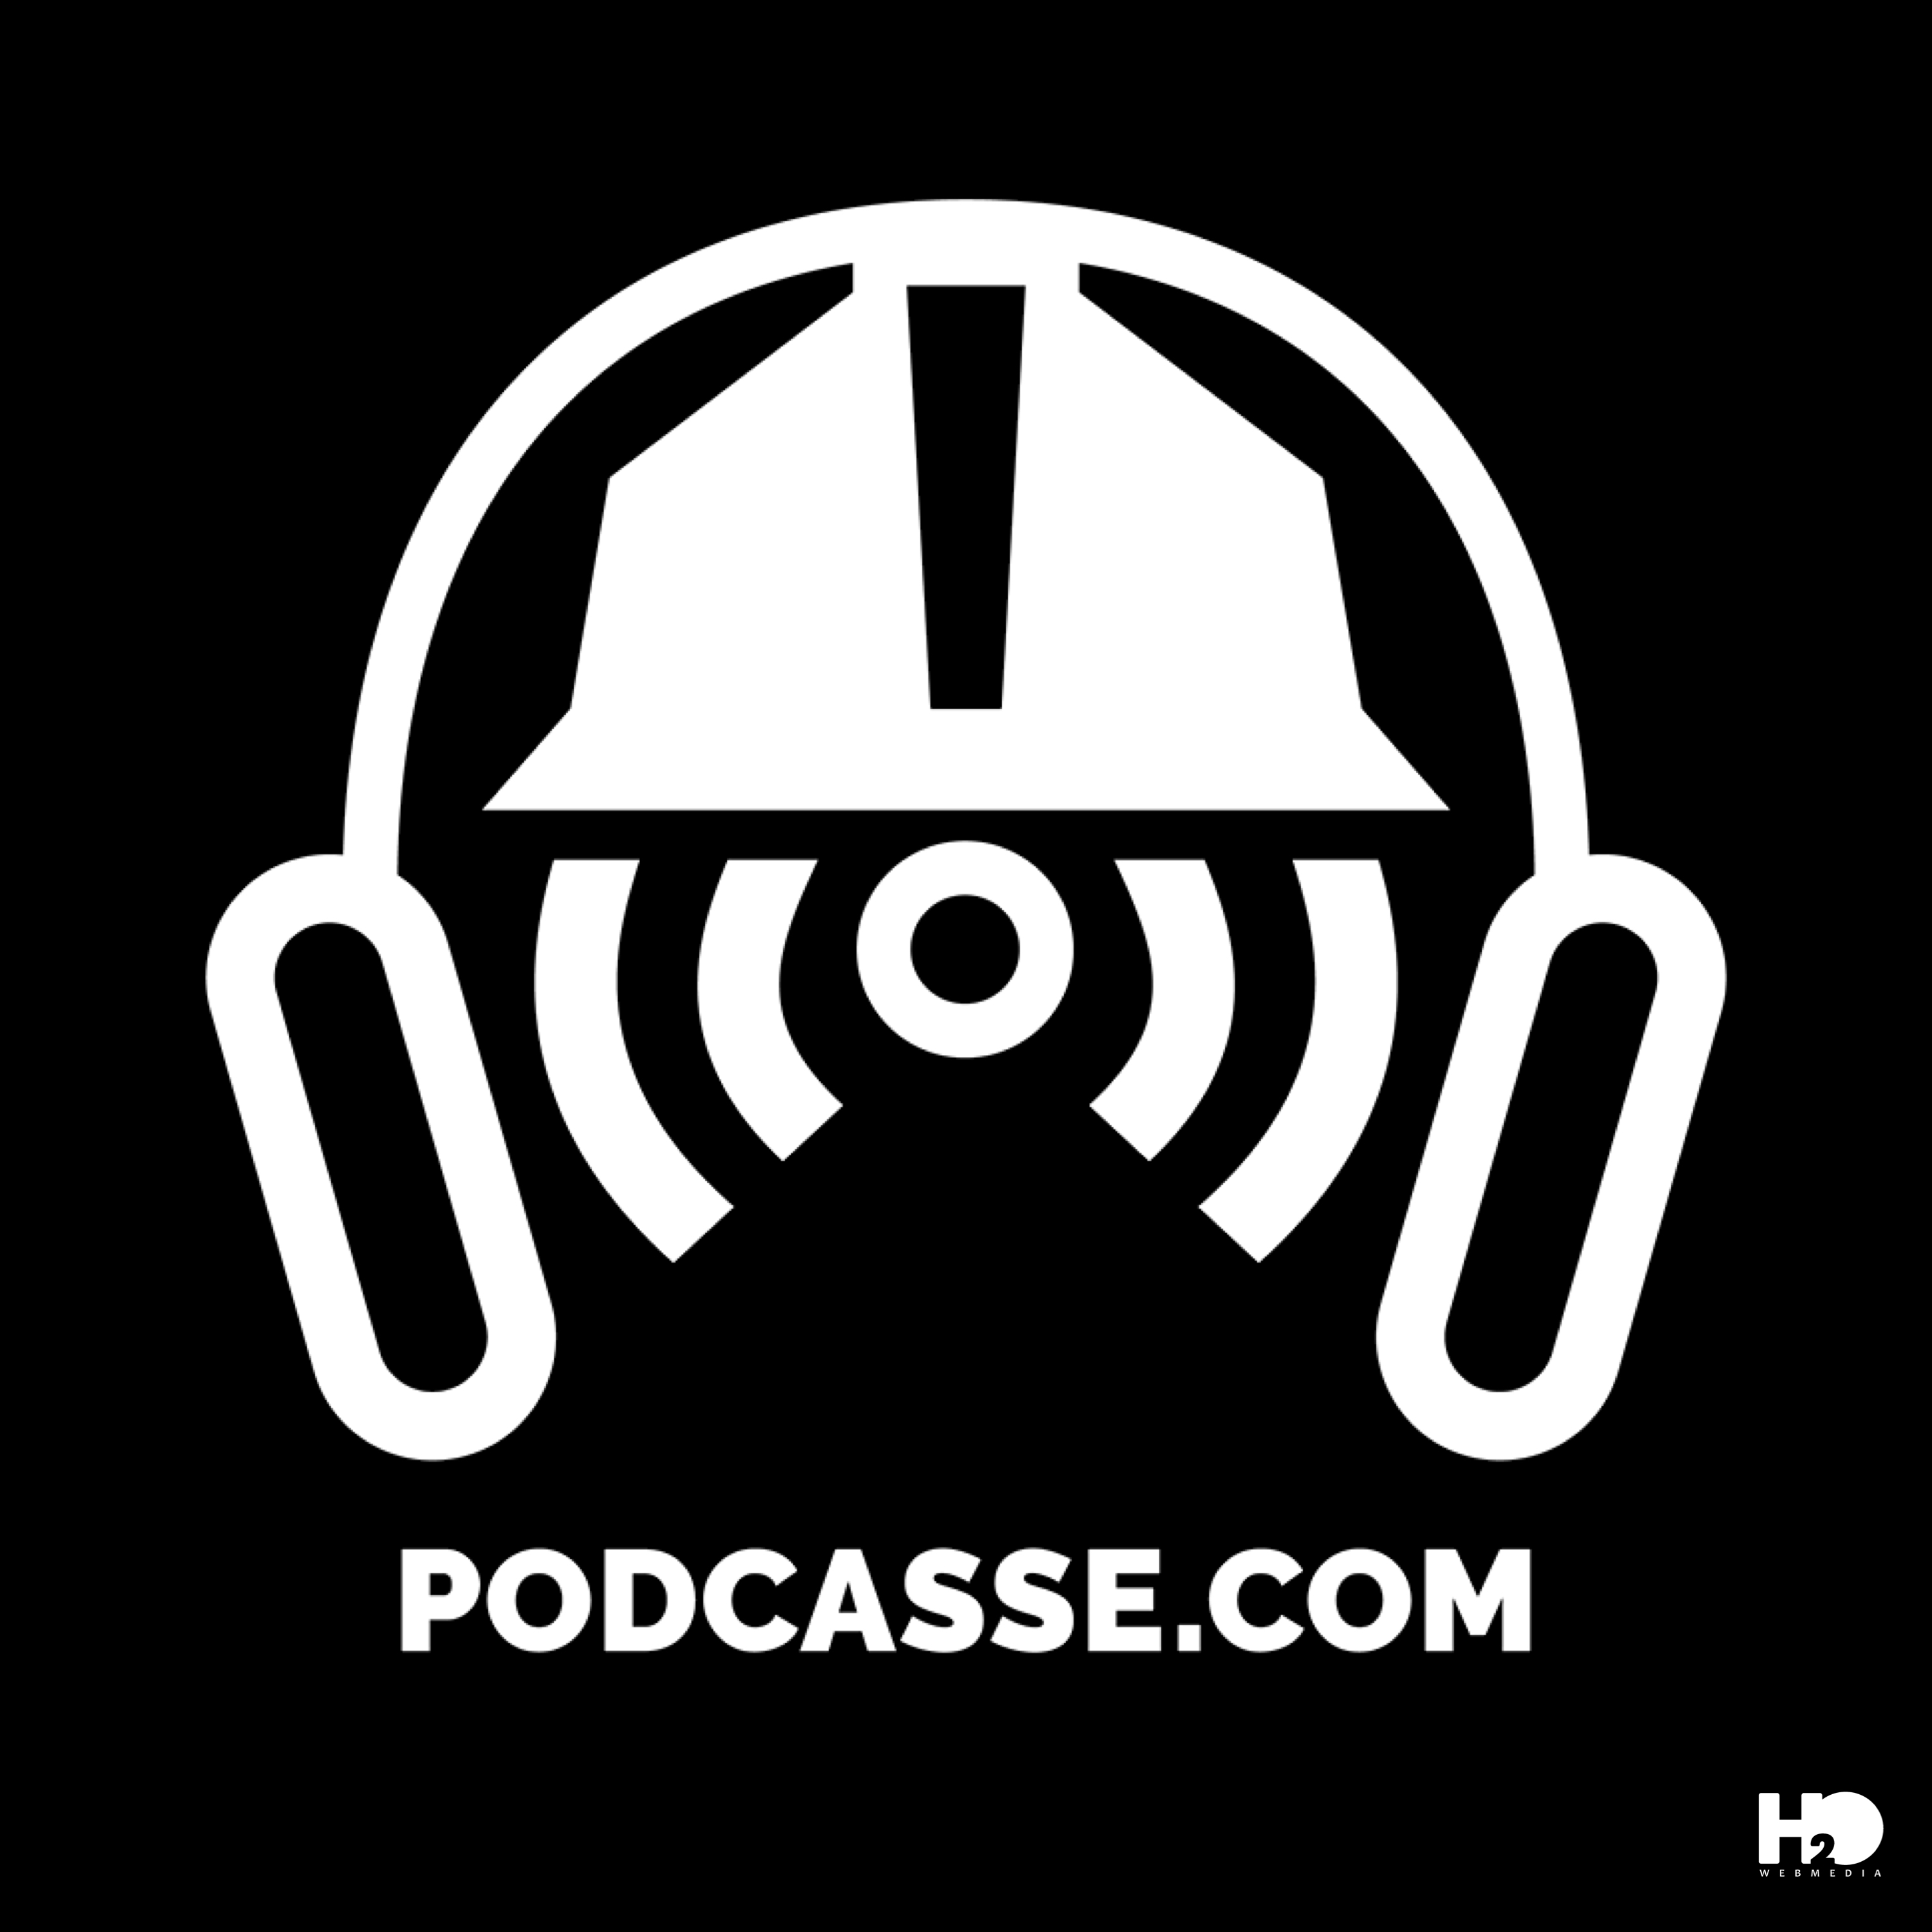 podcasse.com - TOUS NOS SHOWS !